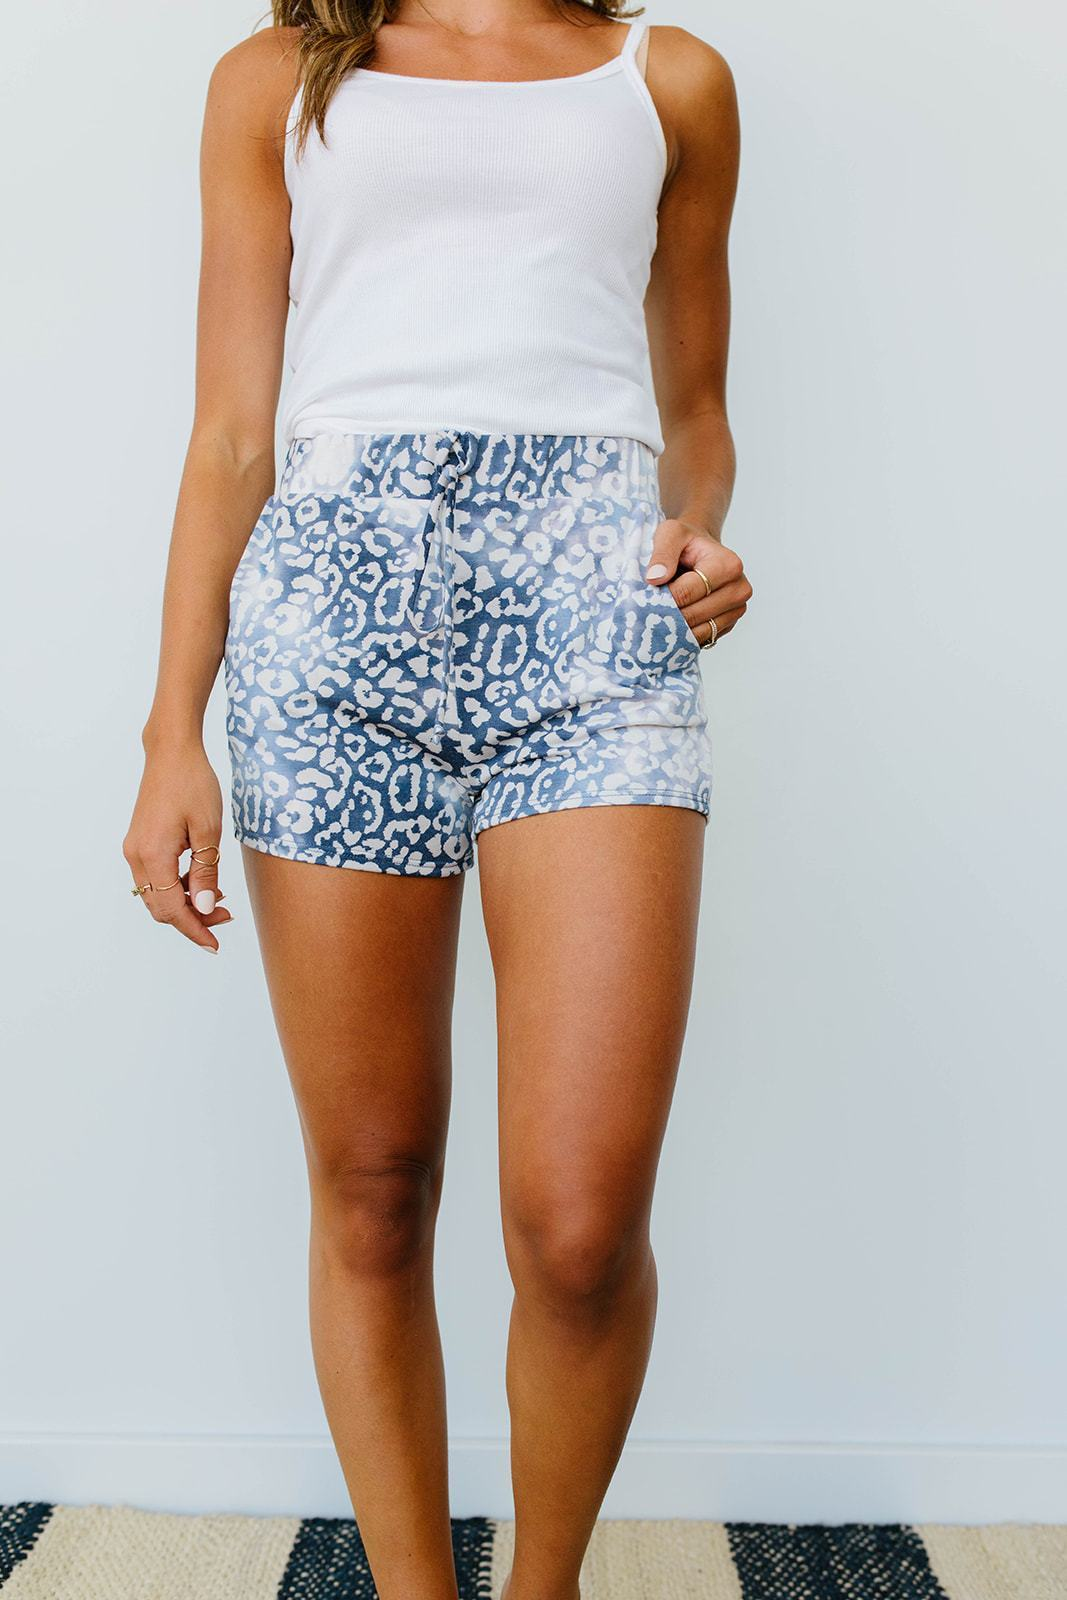 Faded Navy Shorts-[option4]-[option5]-[option6]-[option7]-[option8]-Womens-Clothing-Shop